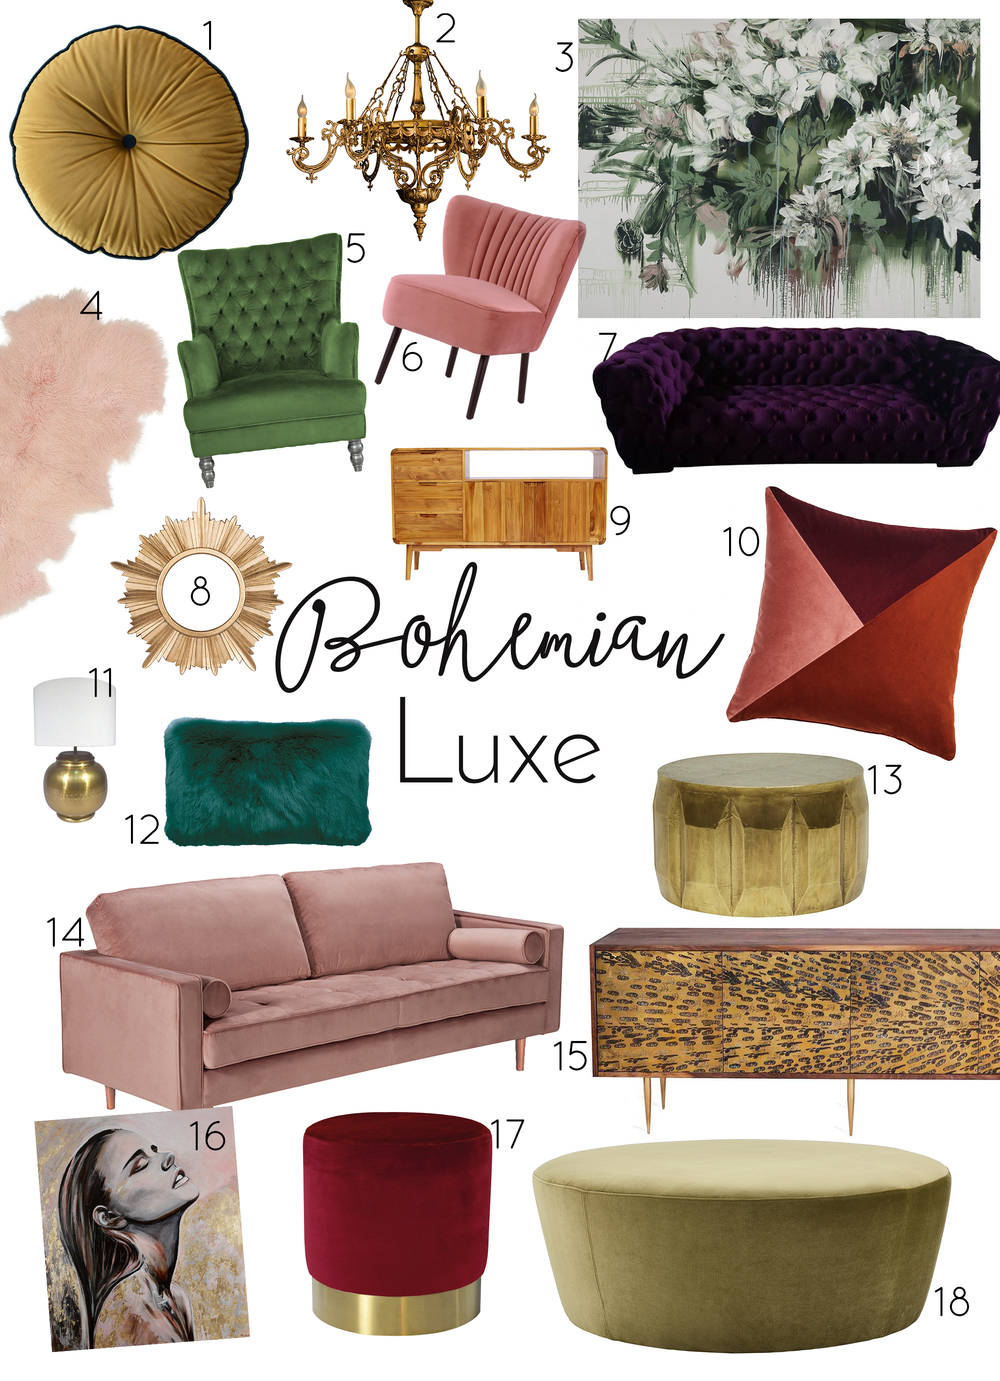 Think of… - luxury, velvet, brass, gold, silks, jewel tones, herringbone, mid modern century, art deco, vintage, extravagance